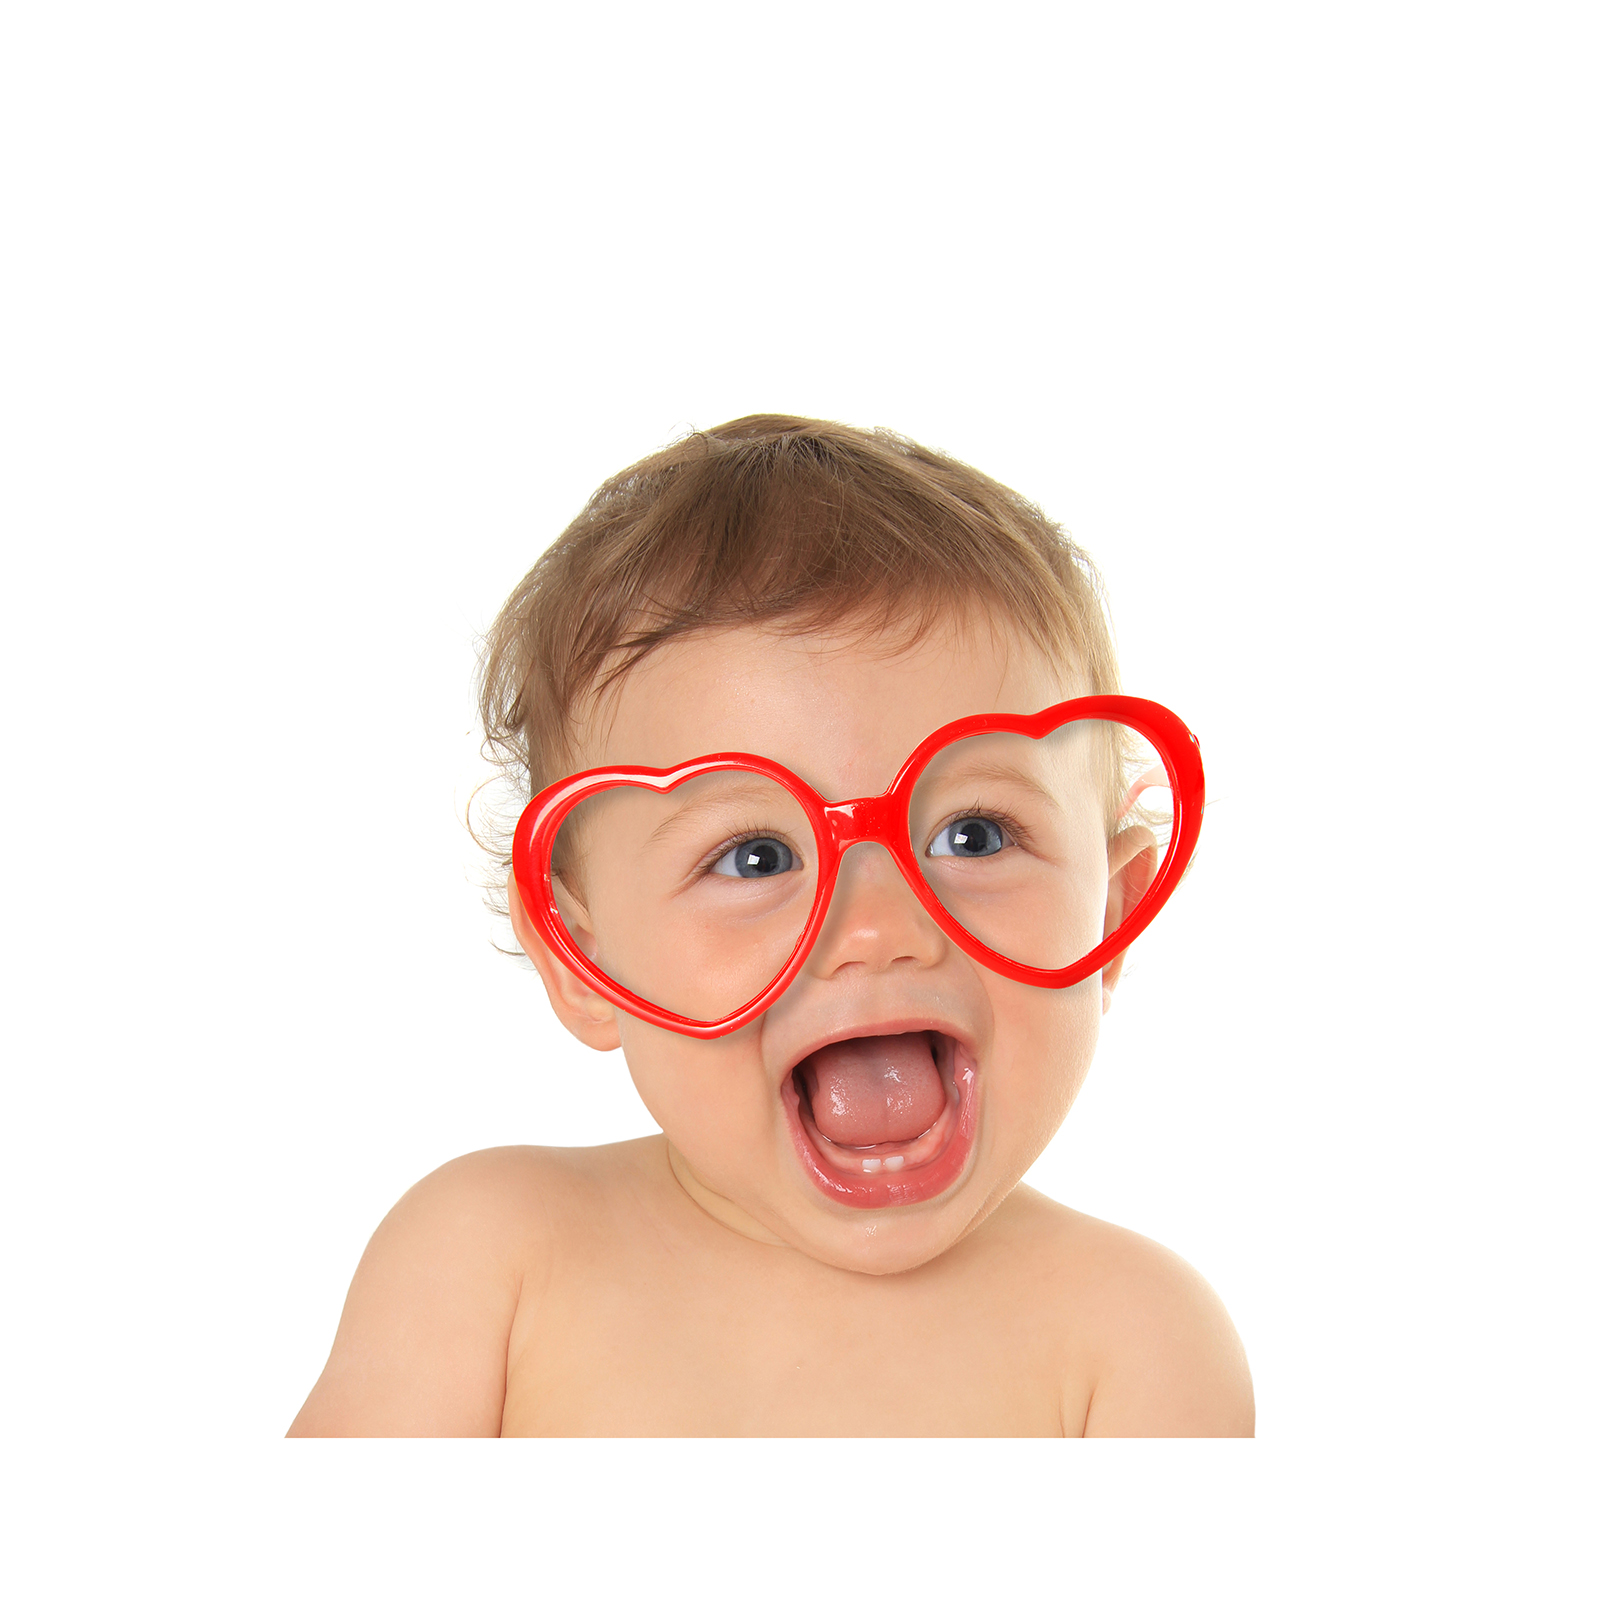 Baby with heart glasses